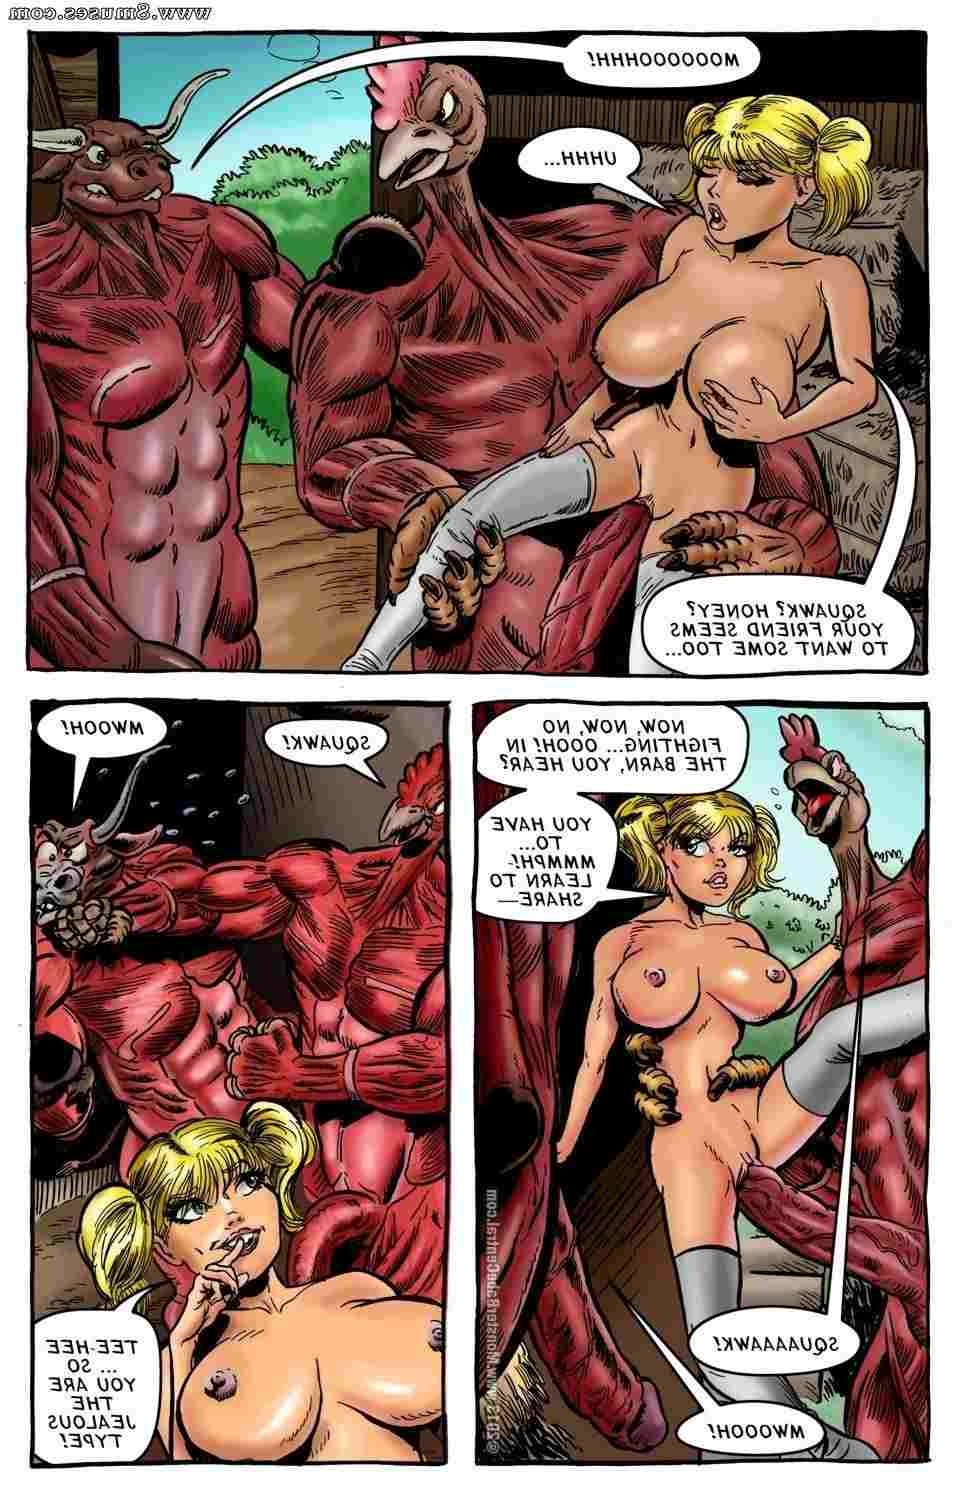 Central-Comics/Monster-Babe-Central/Monster-Channel Monster_Channel__8muses_-_Sex_and_Porn_Comics_46.jpg